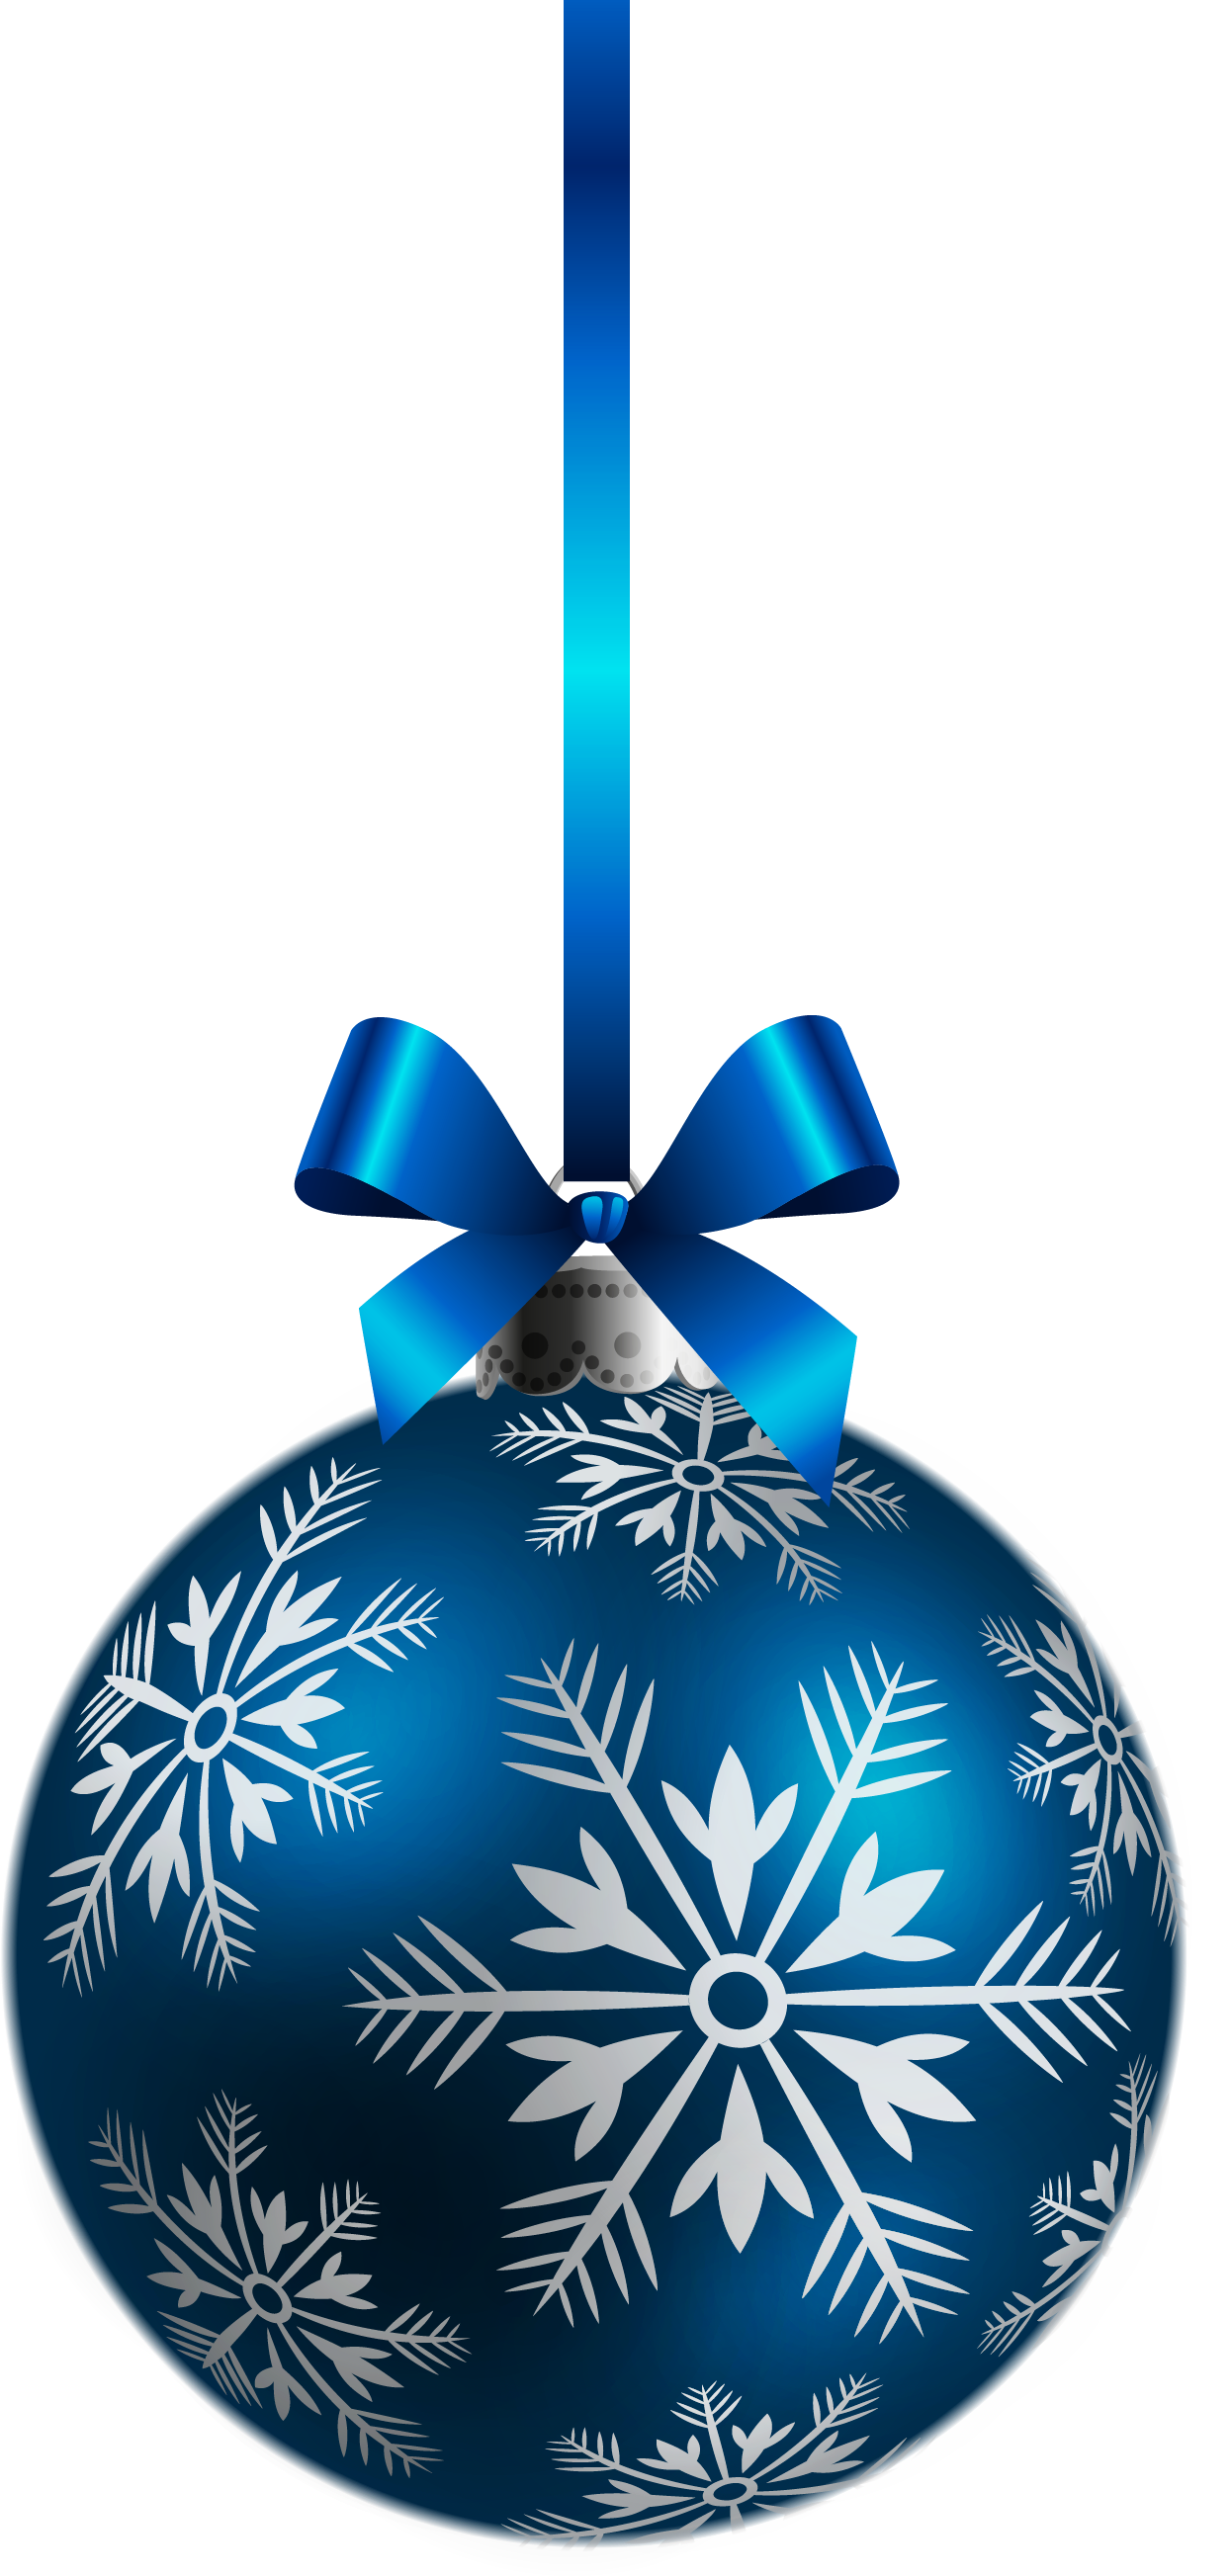 Blue Ball Ornaments Christmas image #46341